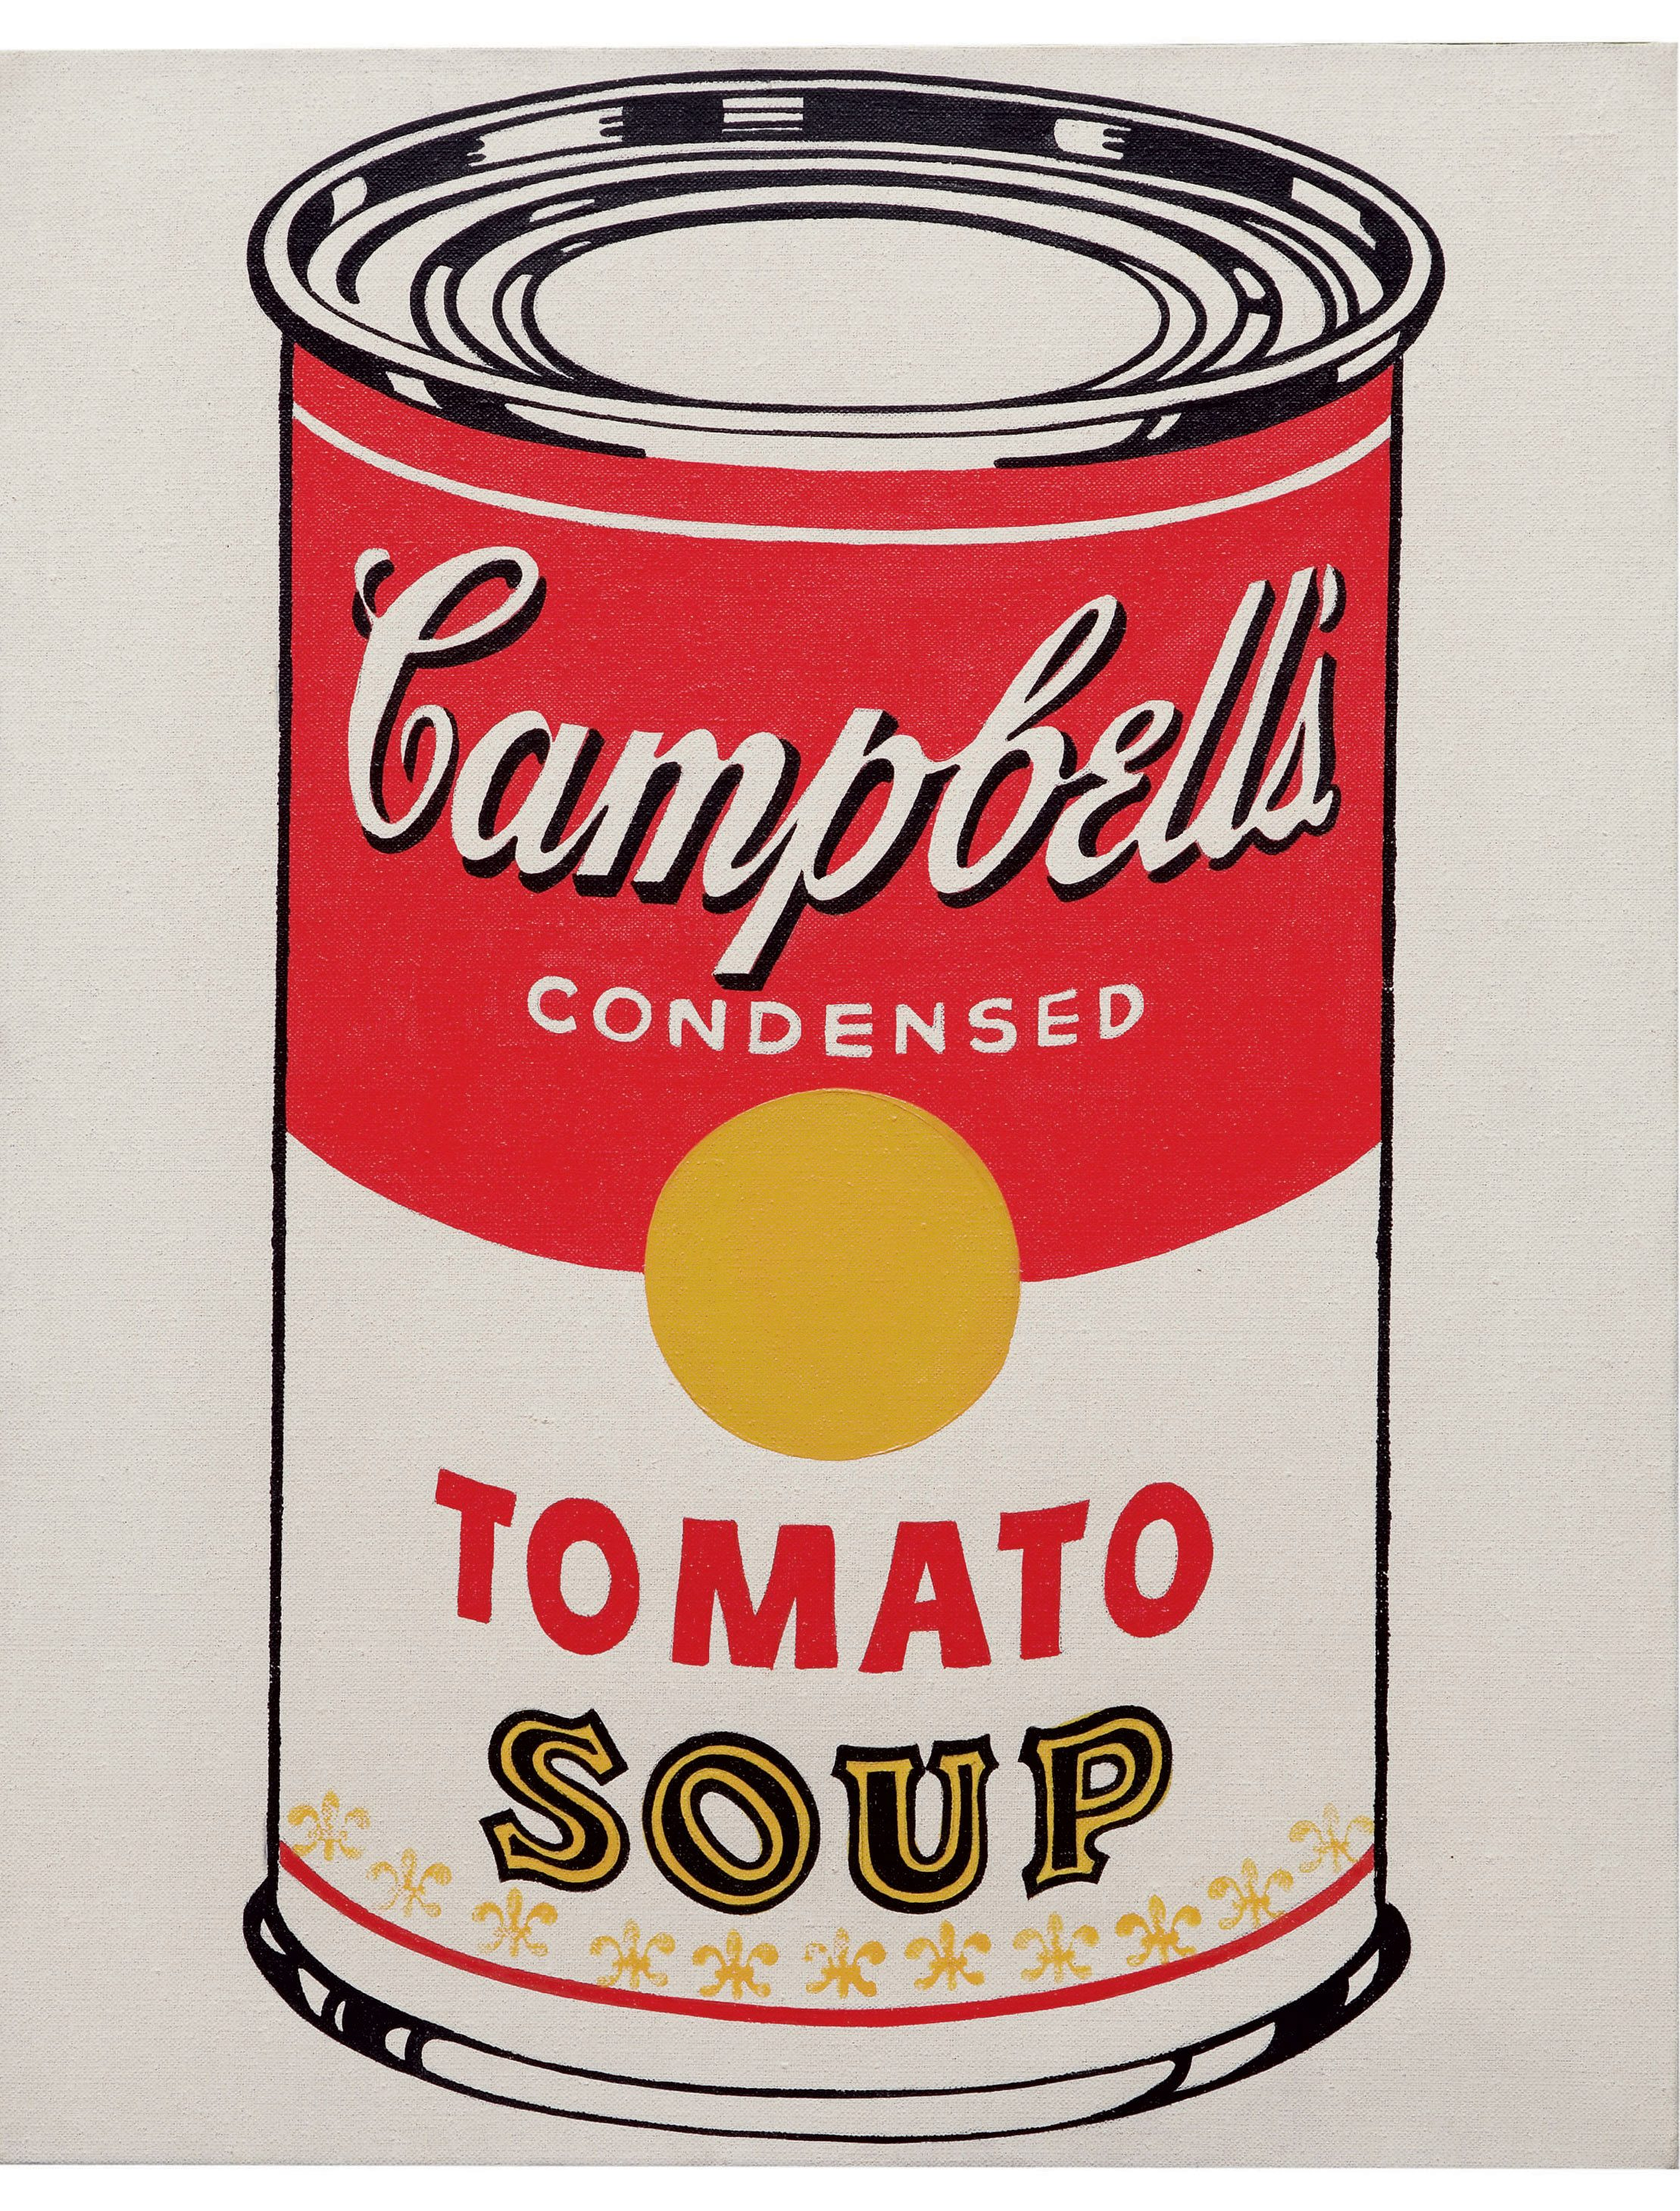 2010 NYR 02355 0012 000andy warhol campbells soup can e1542298534445 15 Unexpected Celeb Photos From History